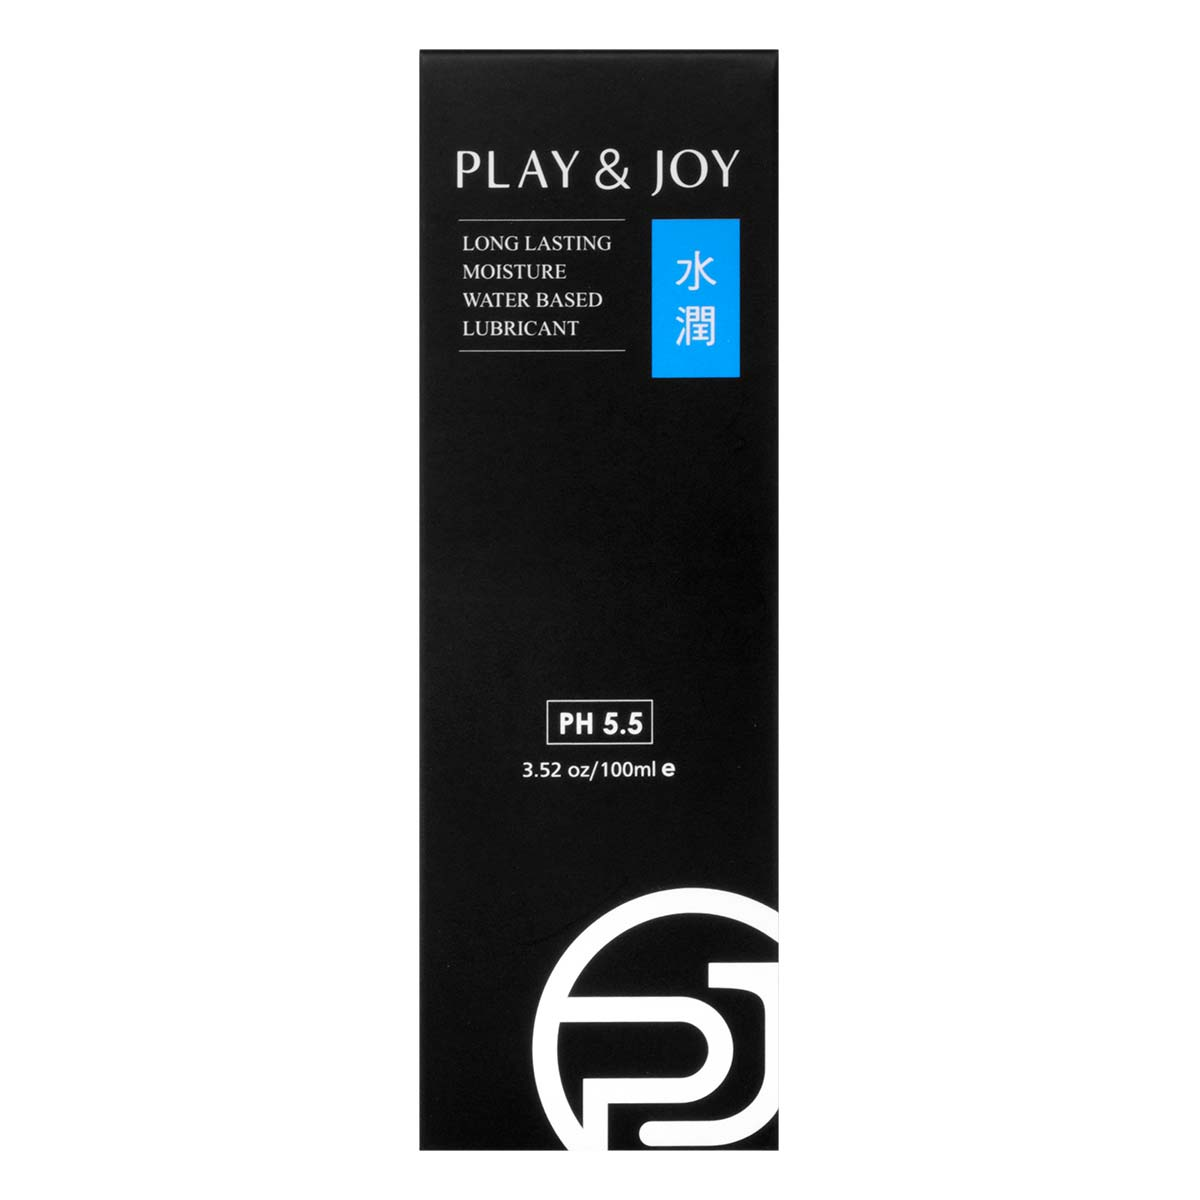 PLAY & JOY Basic 100ml Water-based Lubricant